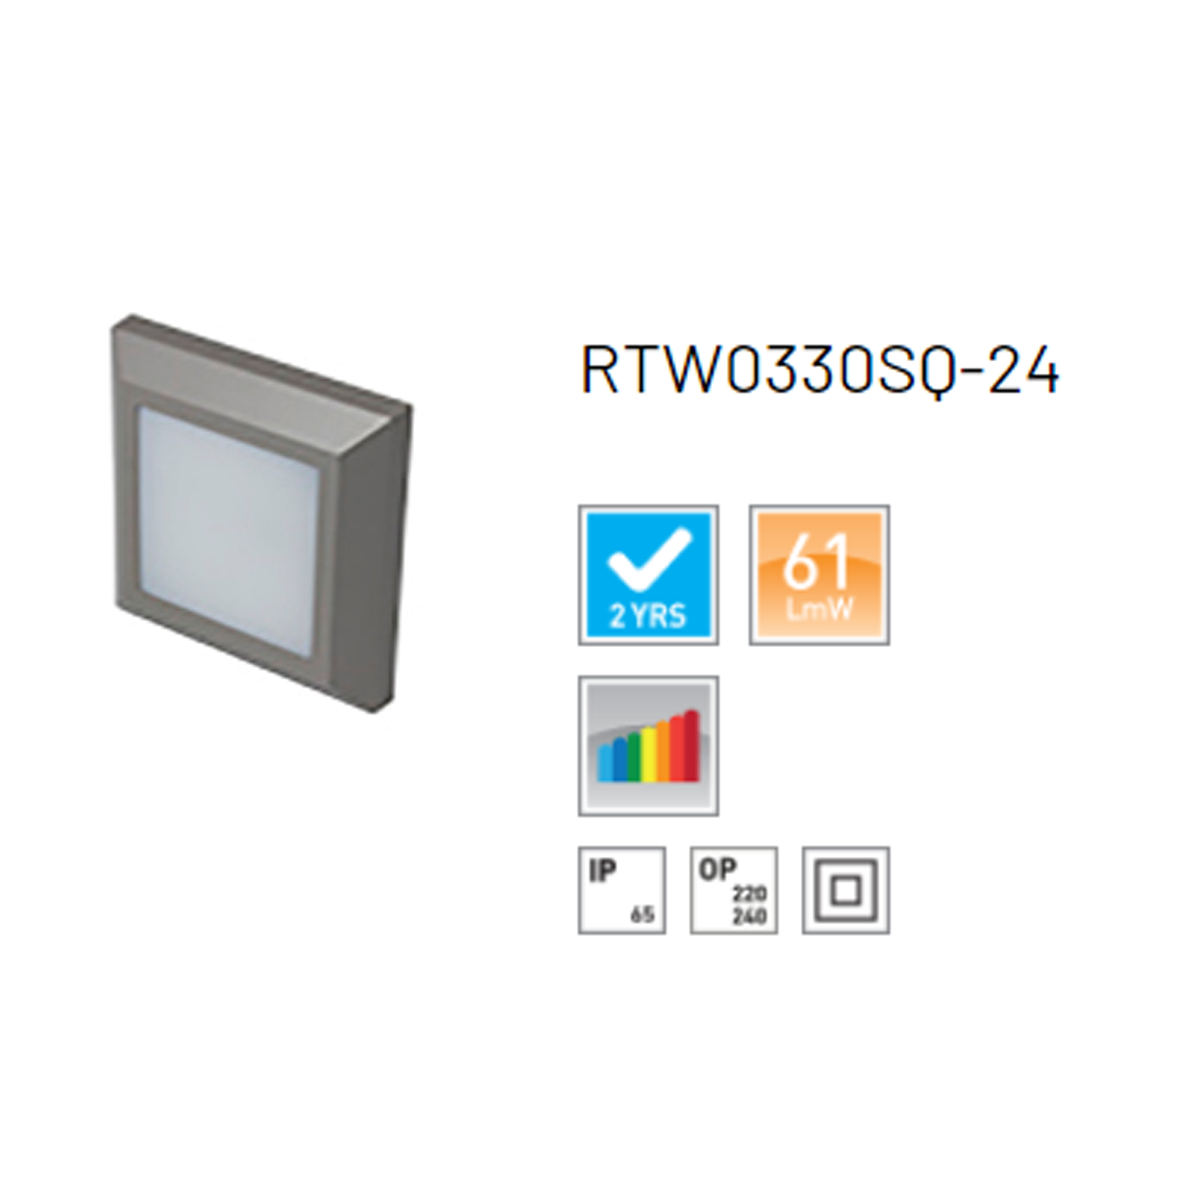 Robus TWILIGHT 3W LED square wall light, IP65, Grey, 3000K